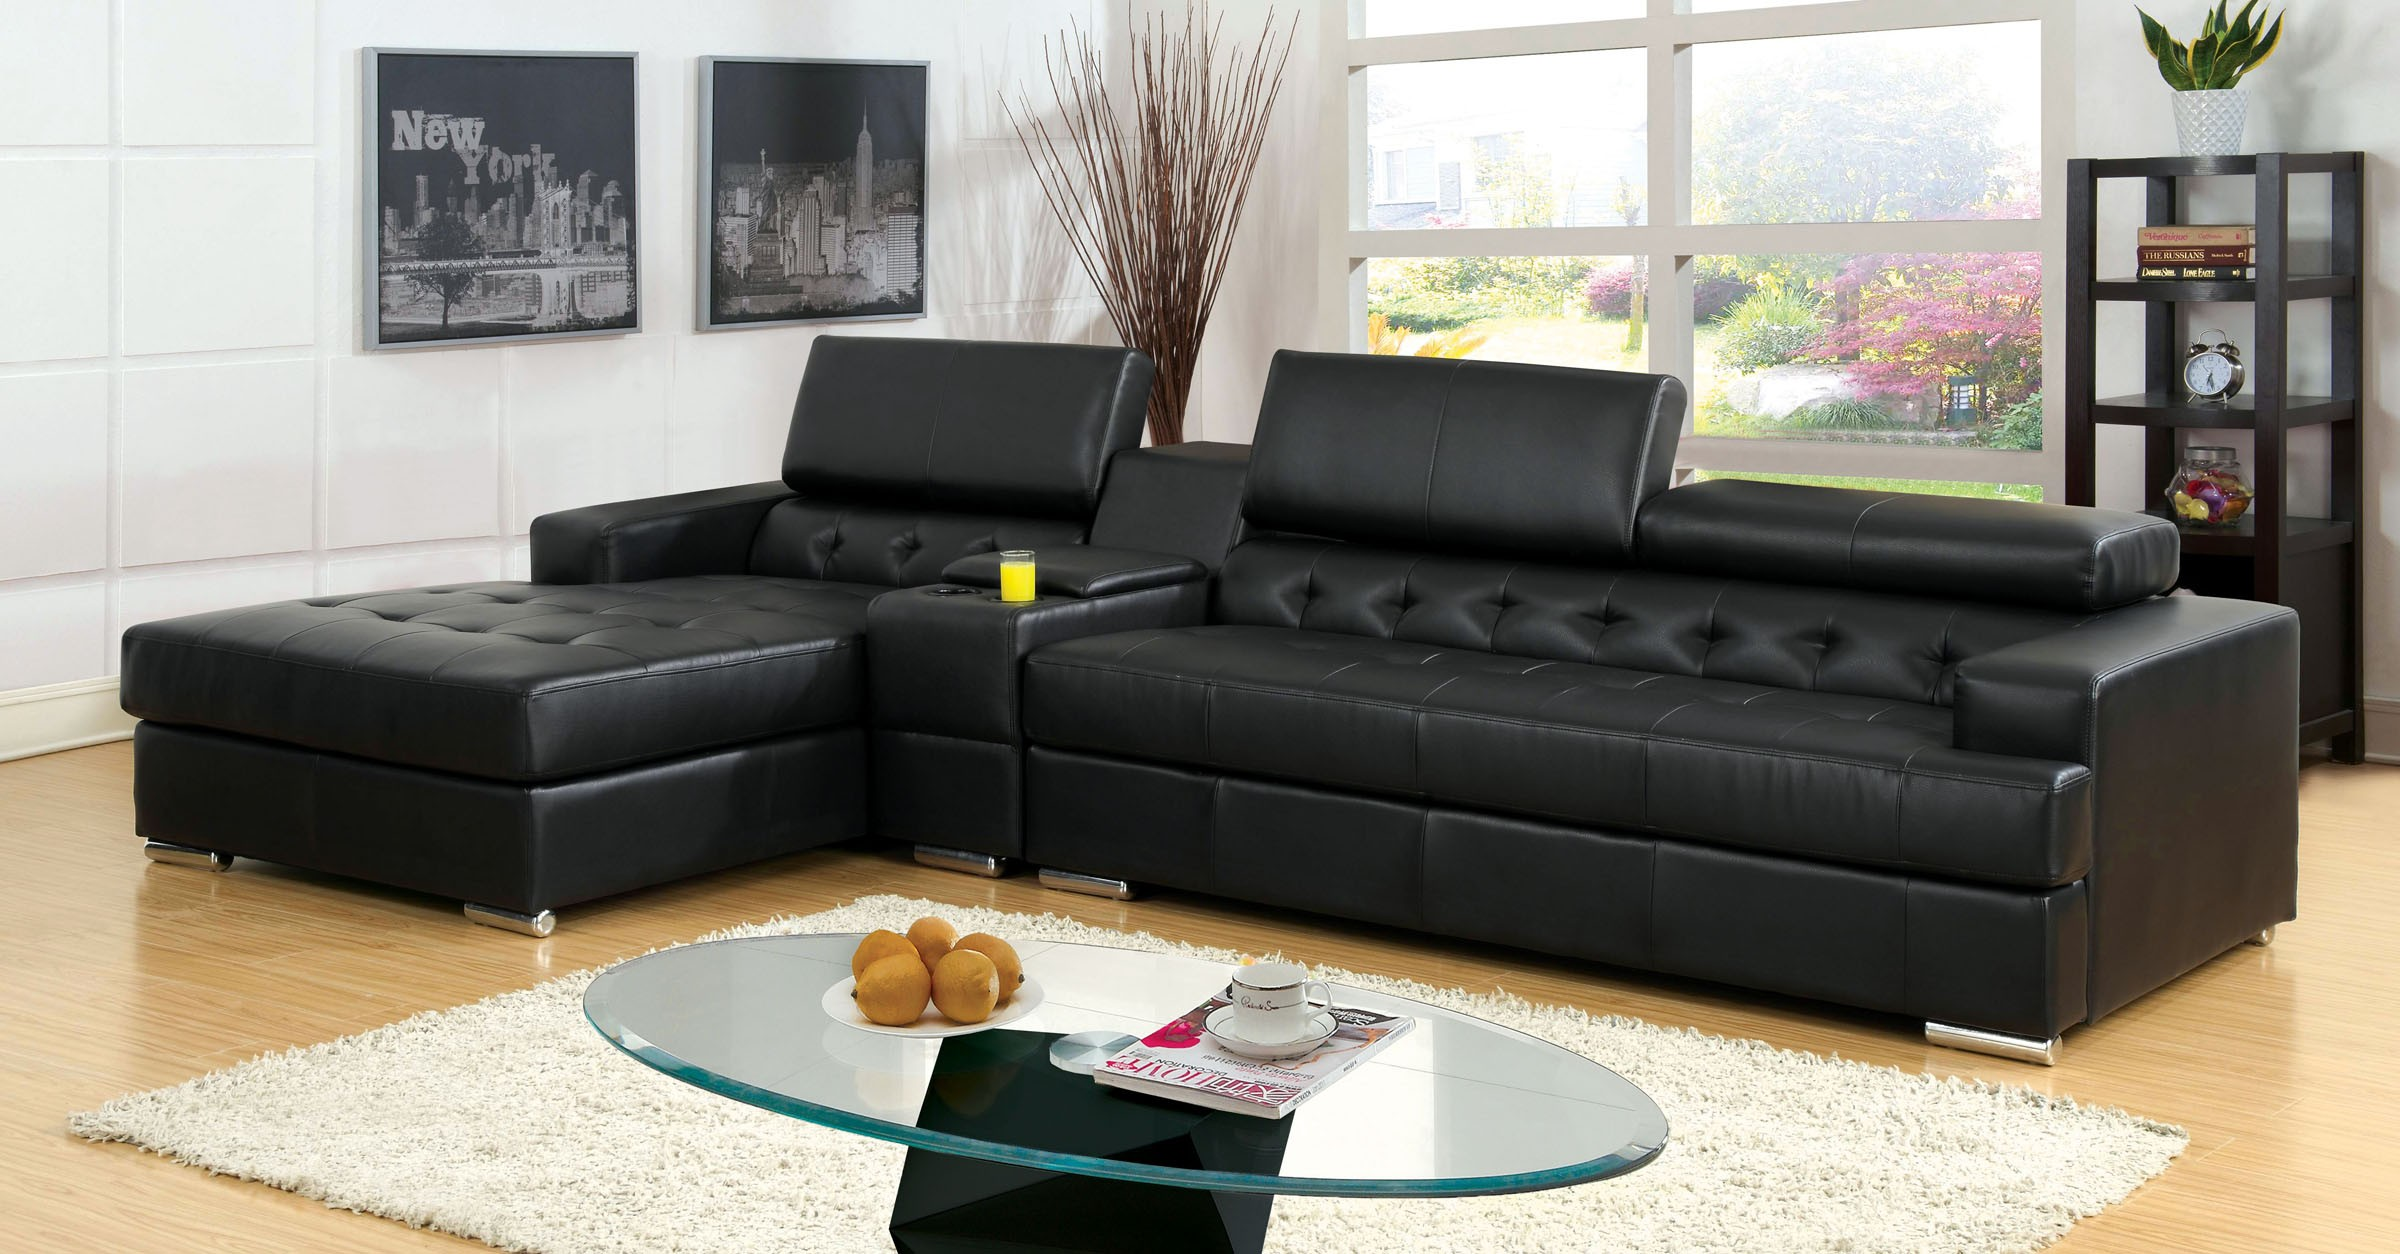 Modern Contemporary Sectional Sofa w/Console T-Cushion Tufted Black Bonded  Leather Living Room Furniture - Walmart.com